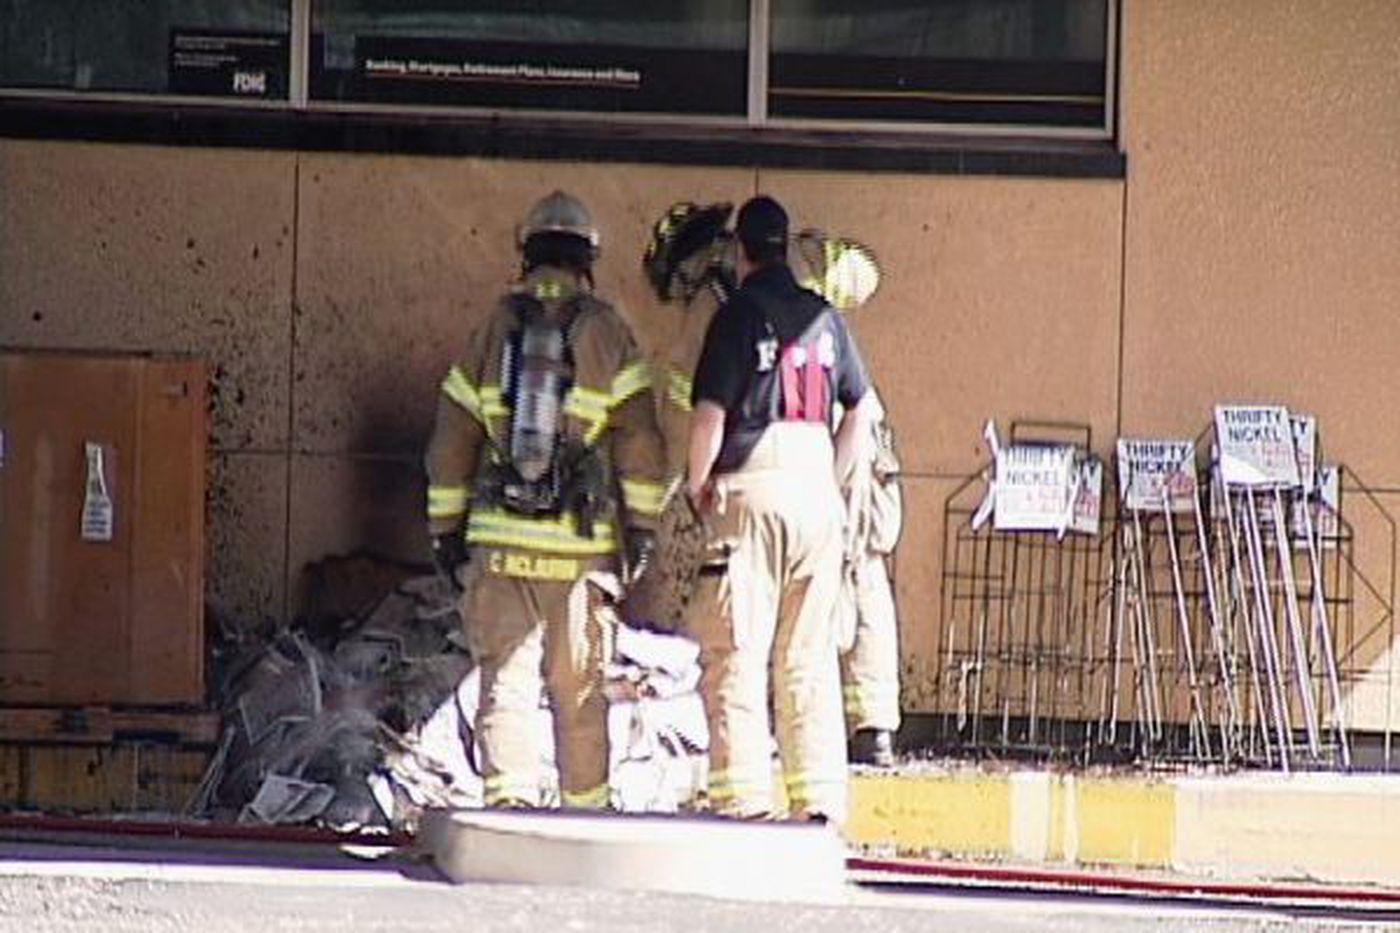 Officials respond to recycling bin fire at Thrifty Nickel